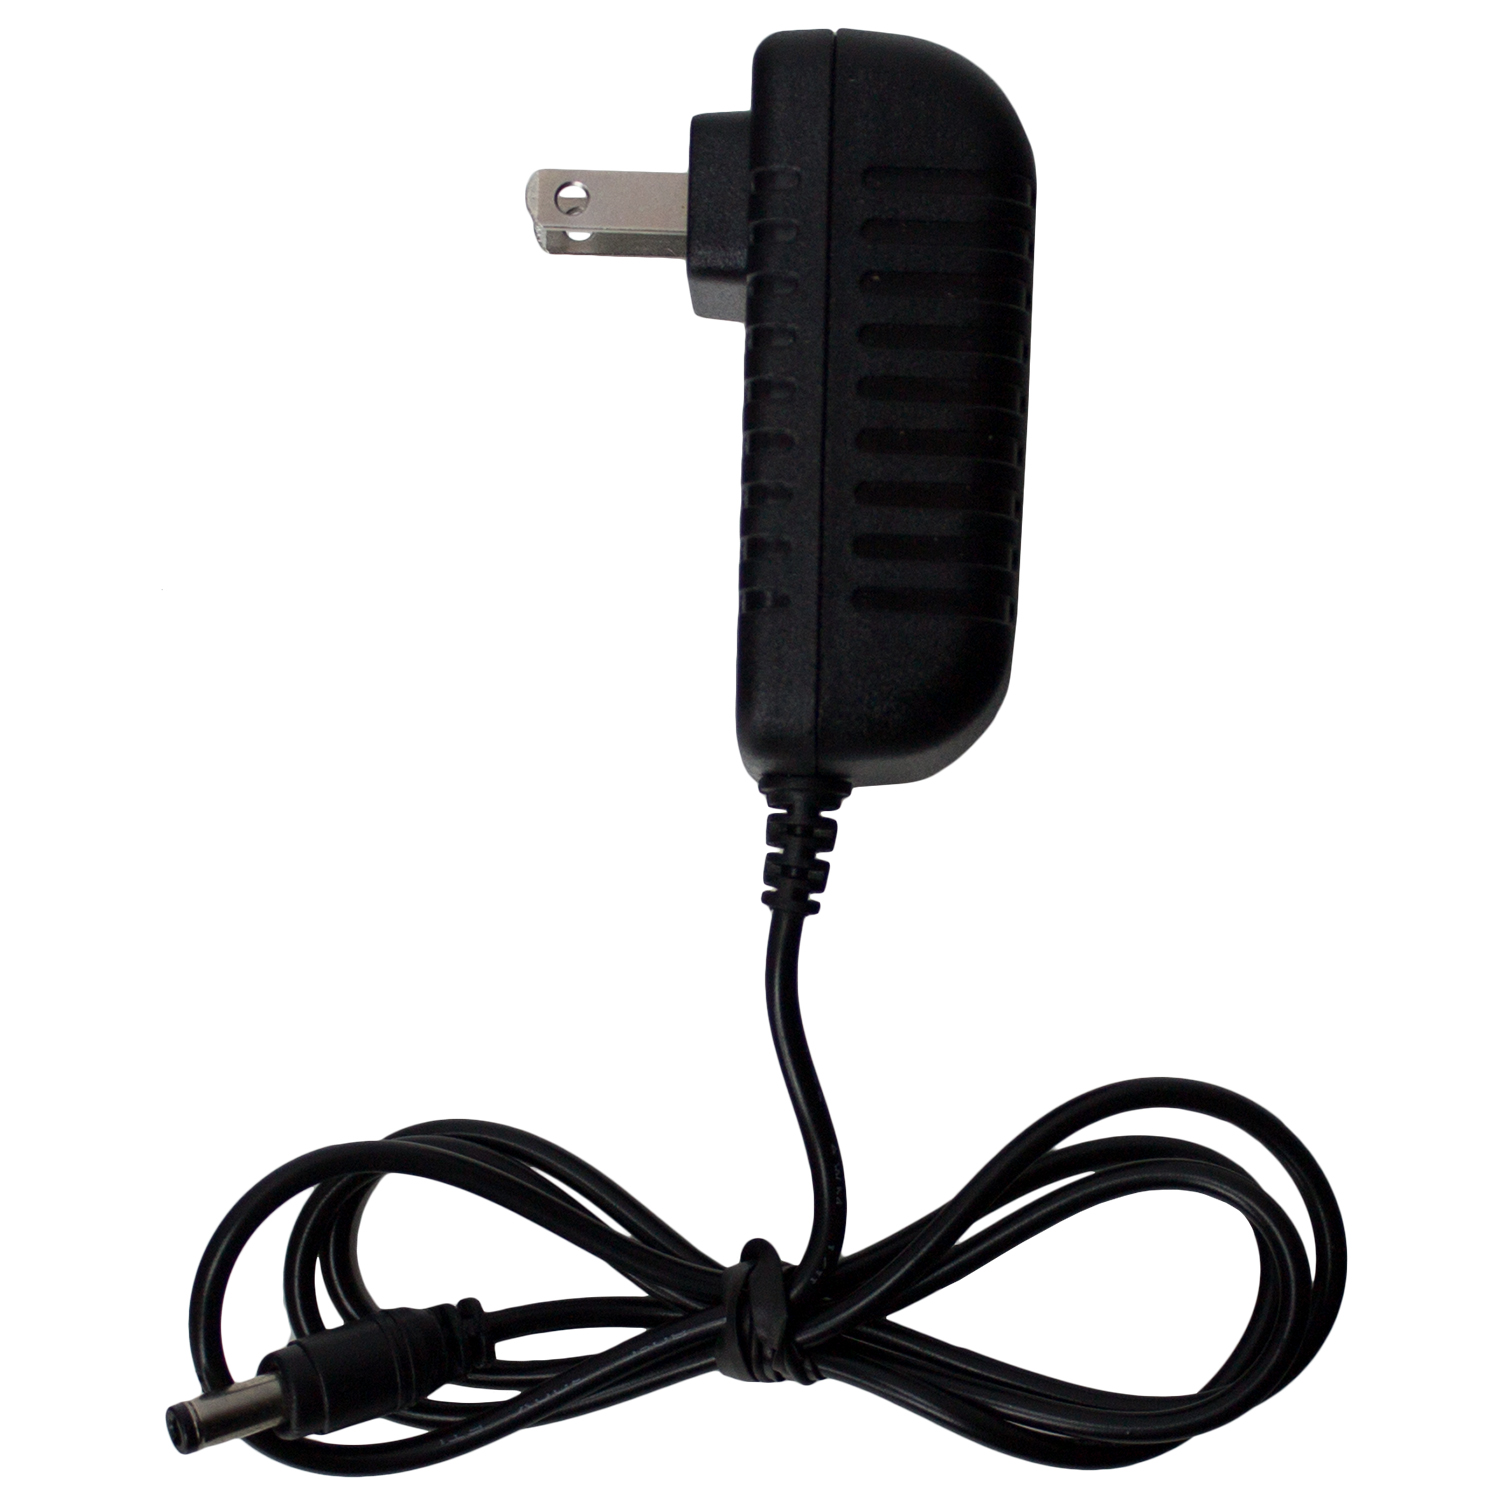 12 Volt/2 Amp Power Adapter